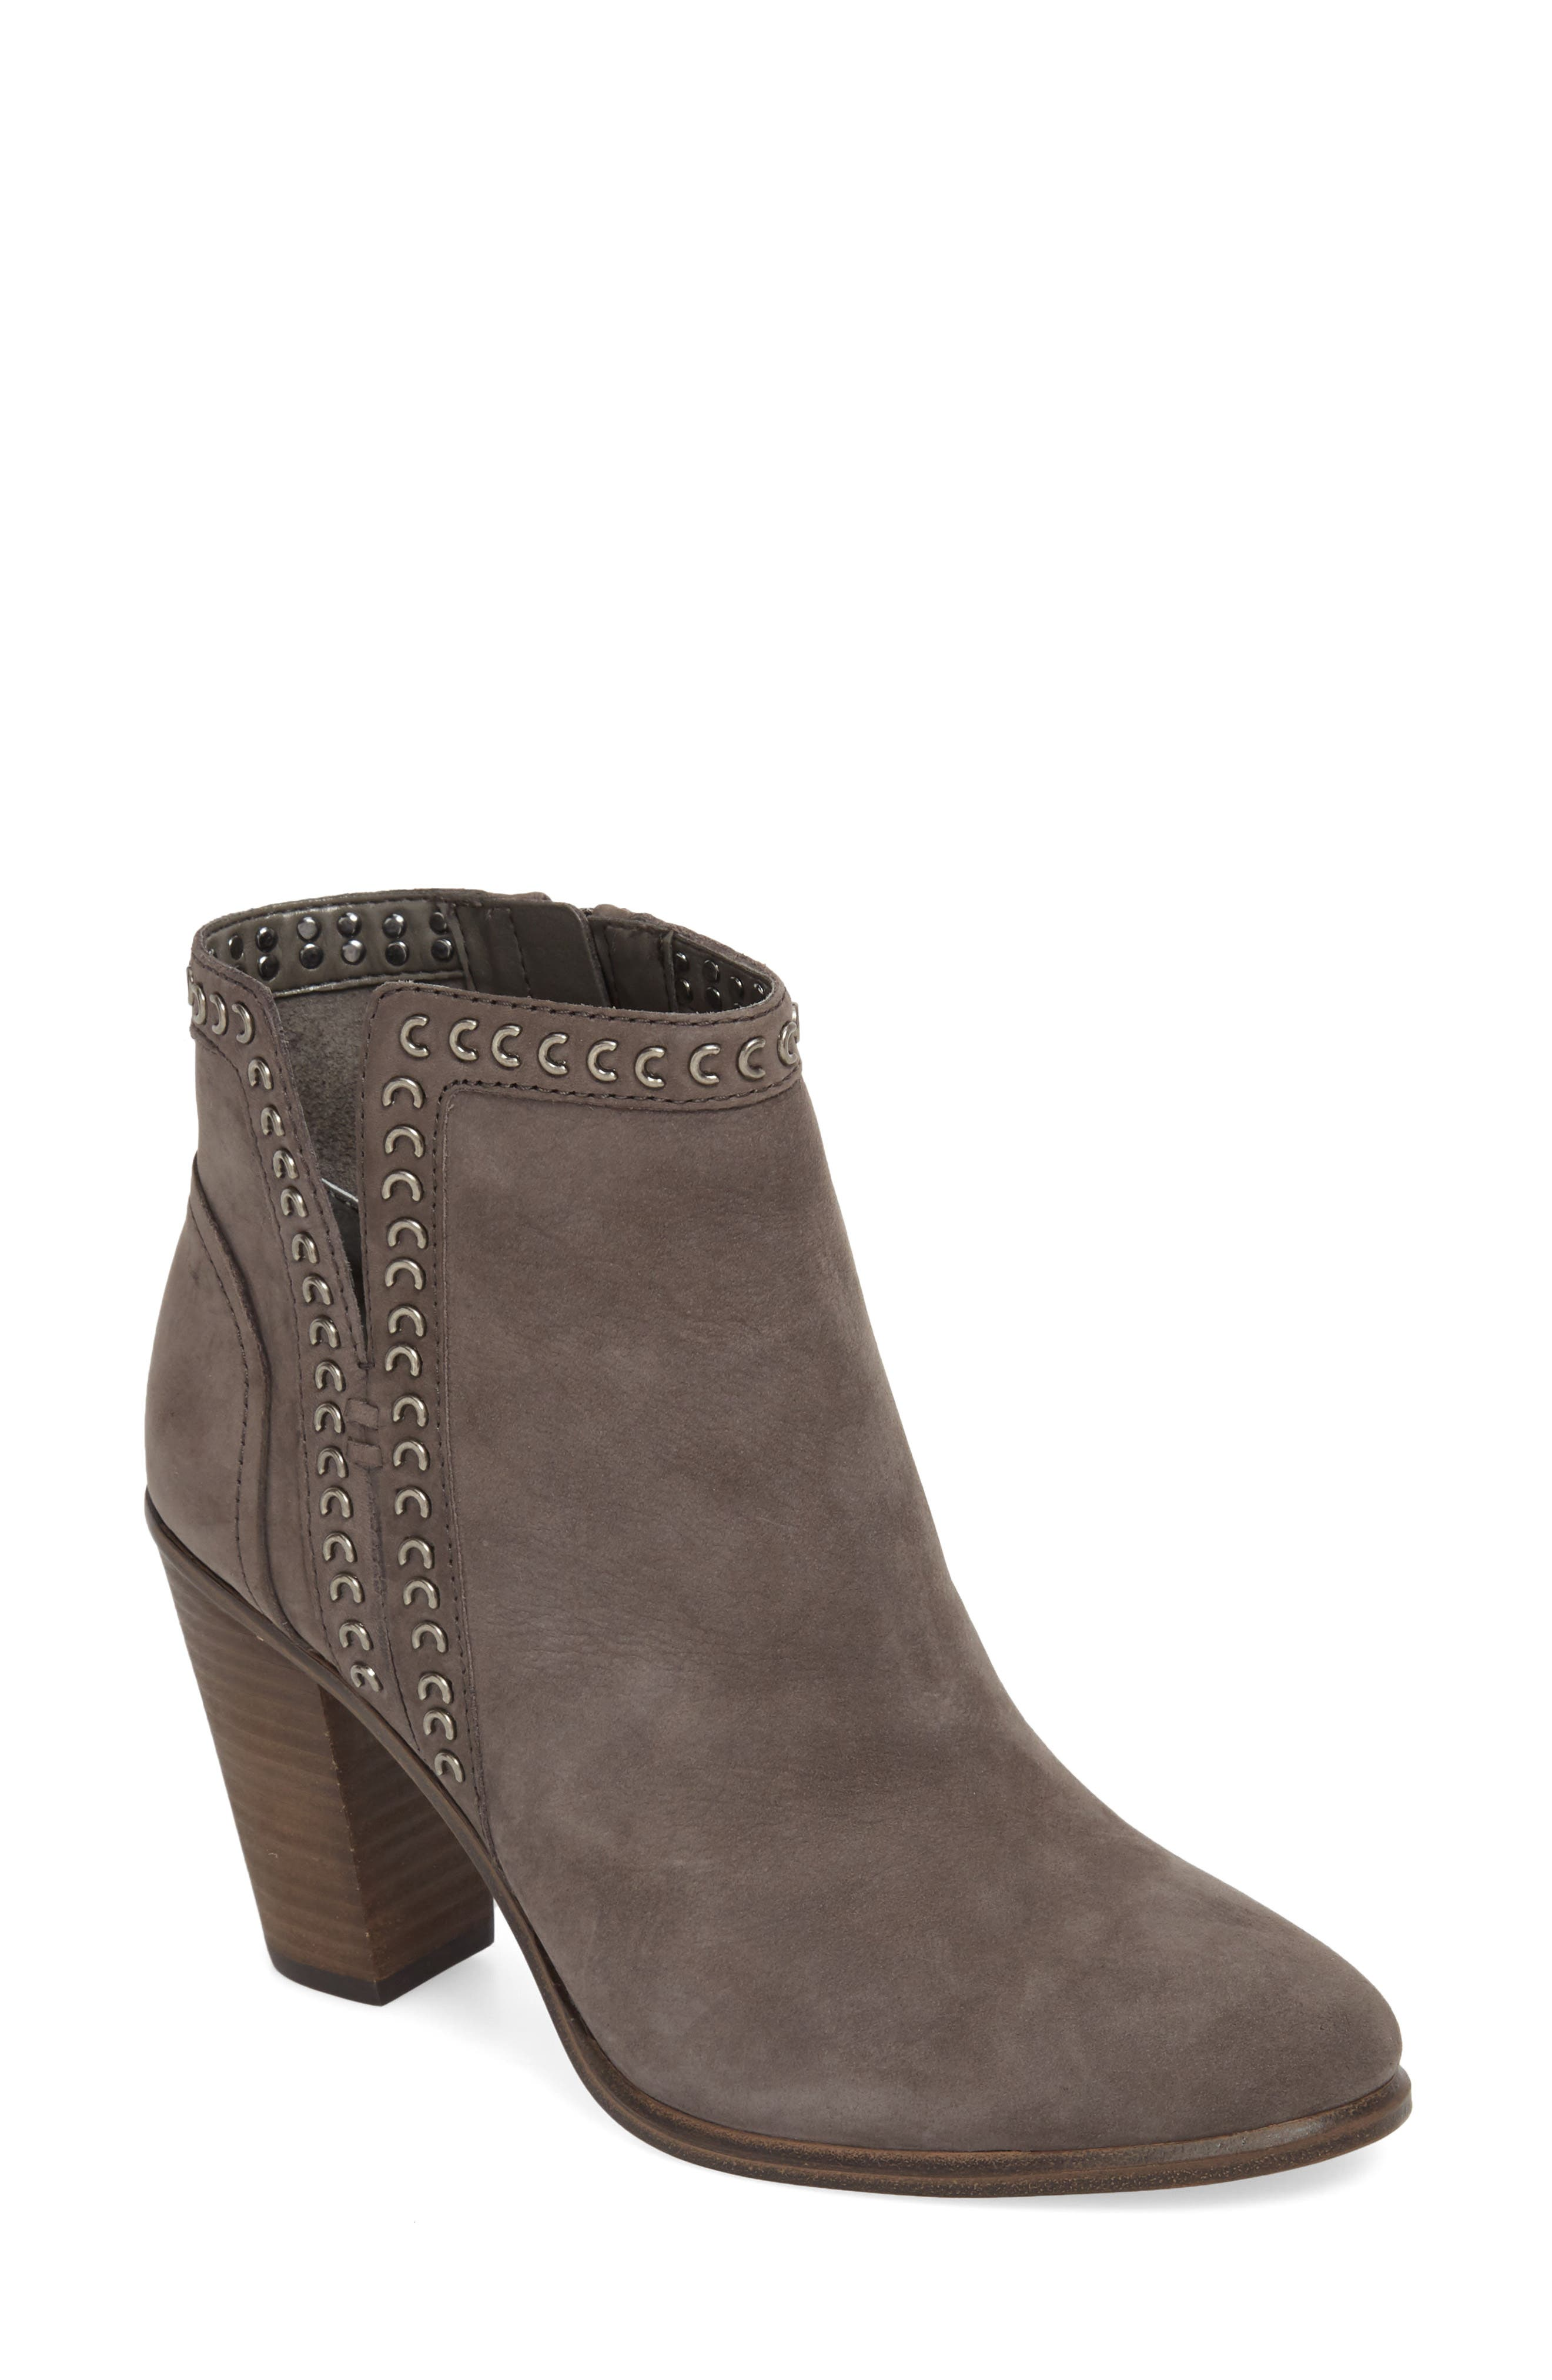 Finchie Bootie,                         Main,                         color, Greystone Leather